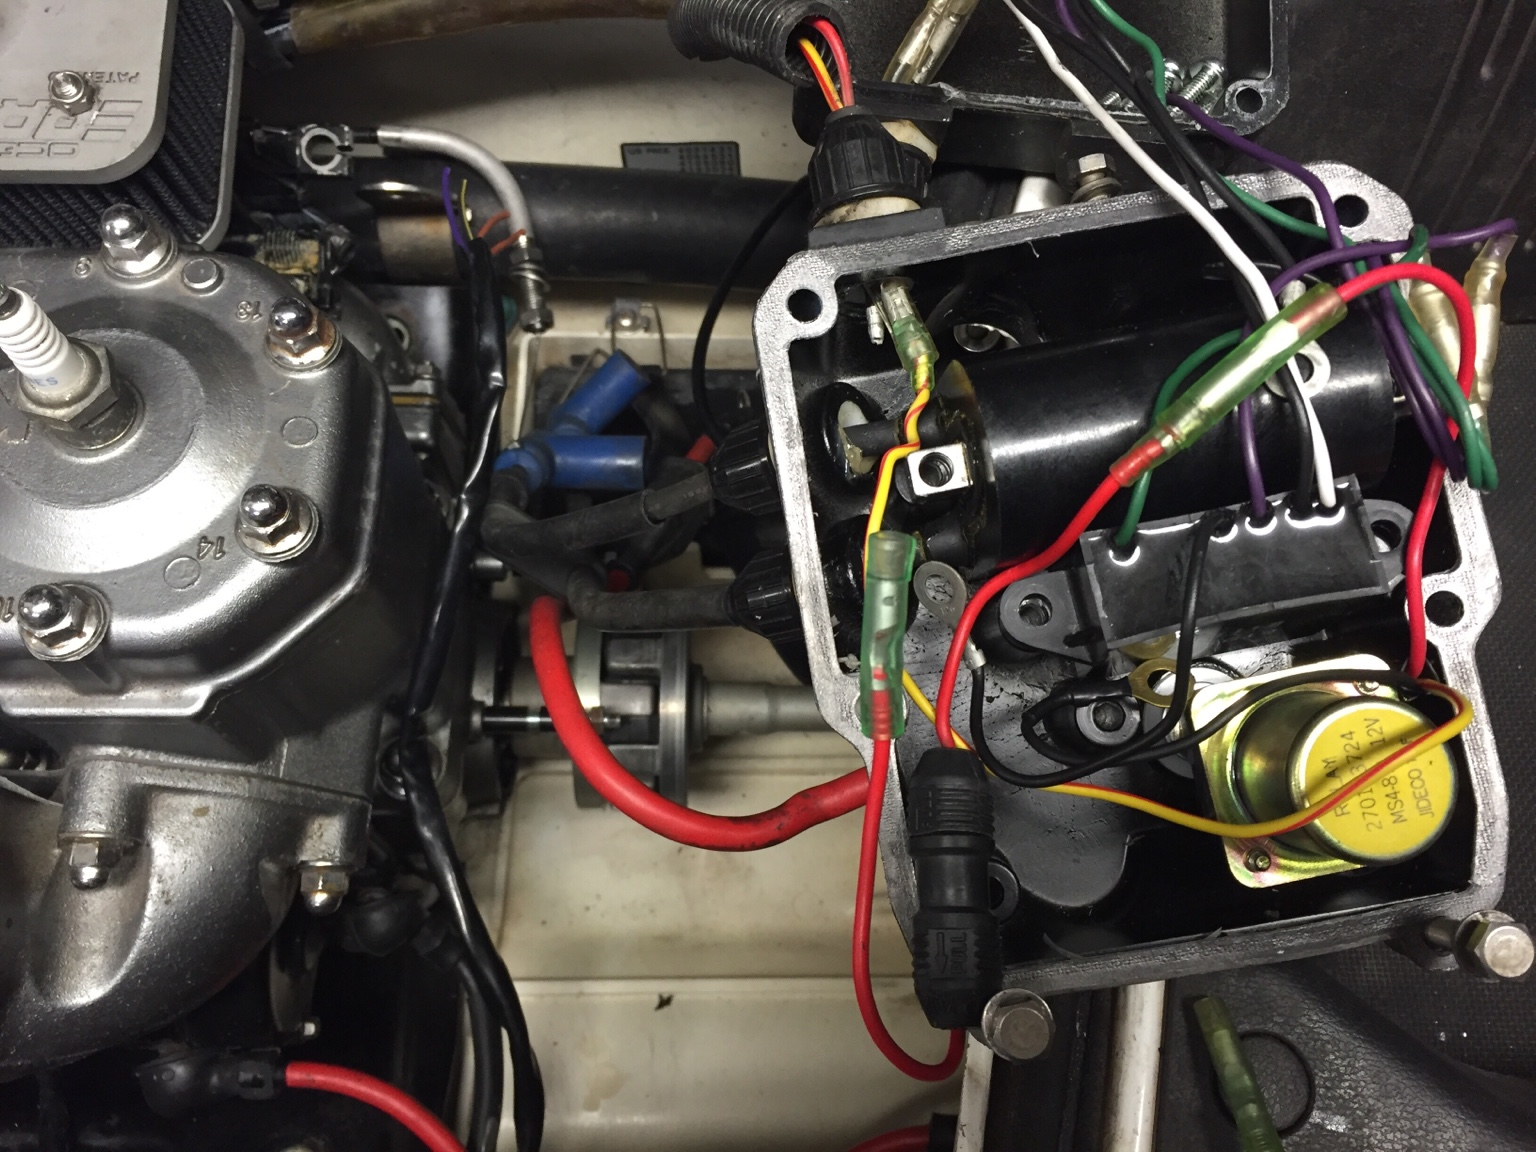 hight resolution of 550sx 650 conversion wiring robin engines wiring diagrams any information is much appreciated